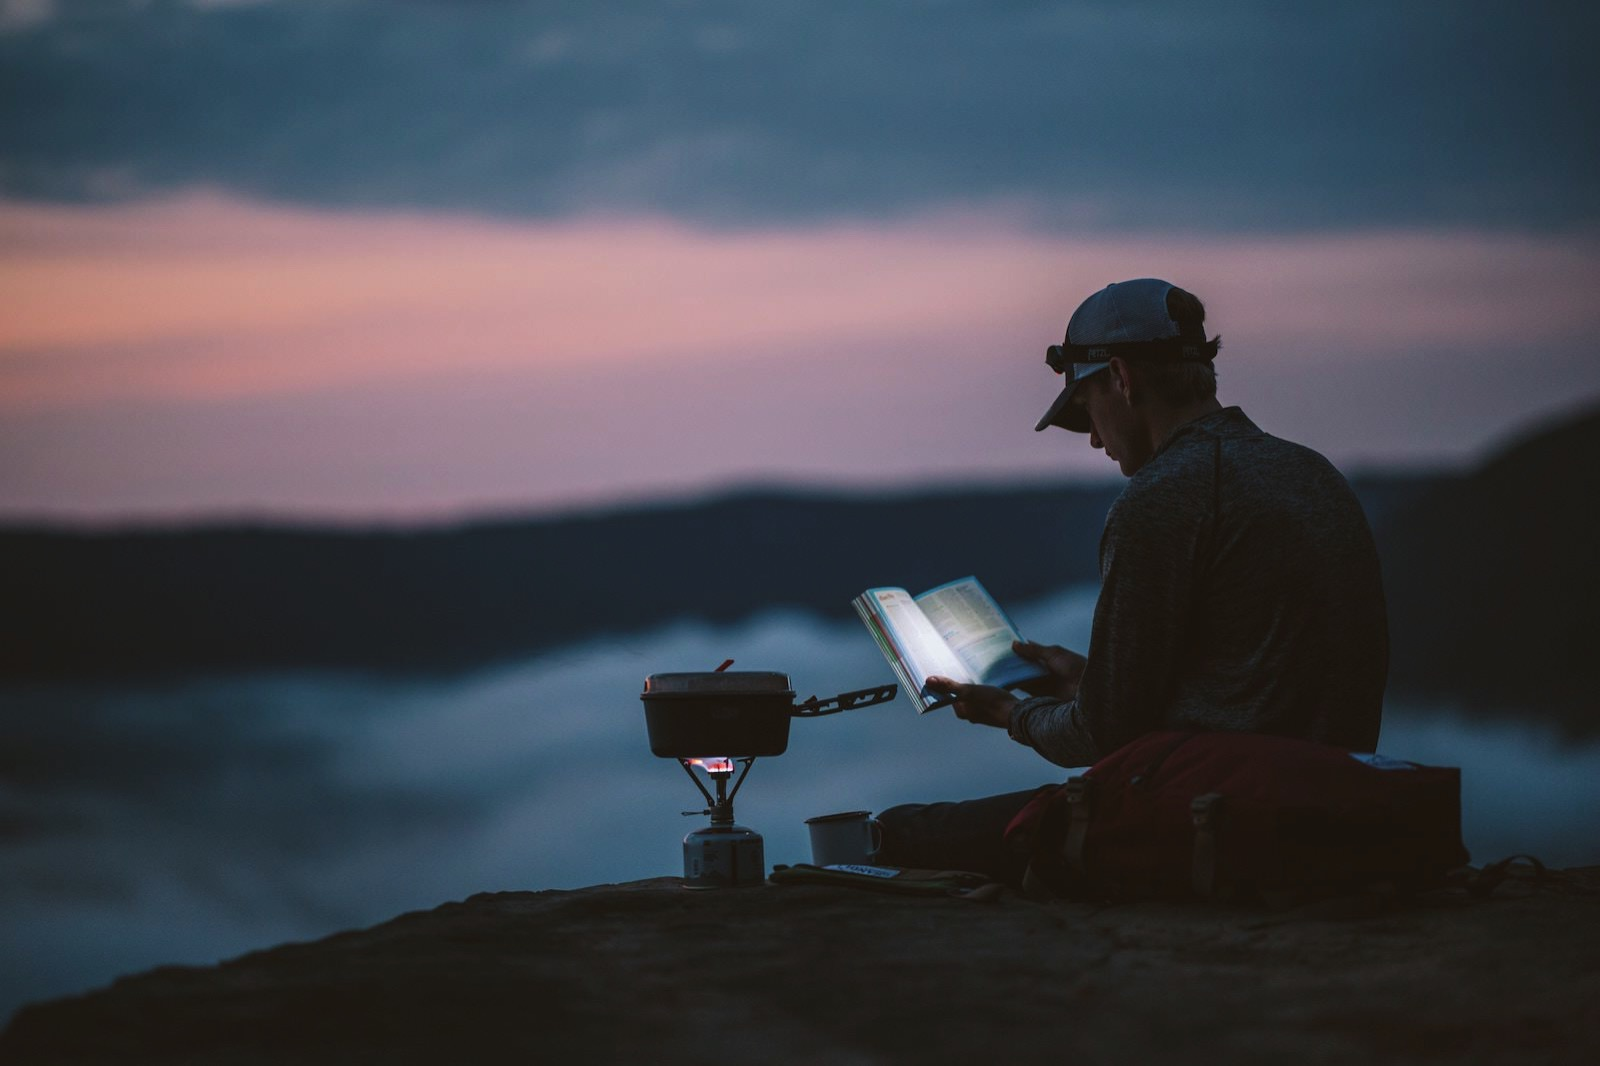 Lonely planet 622111 unsplash reading in dusk